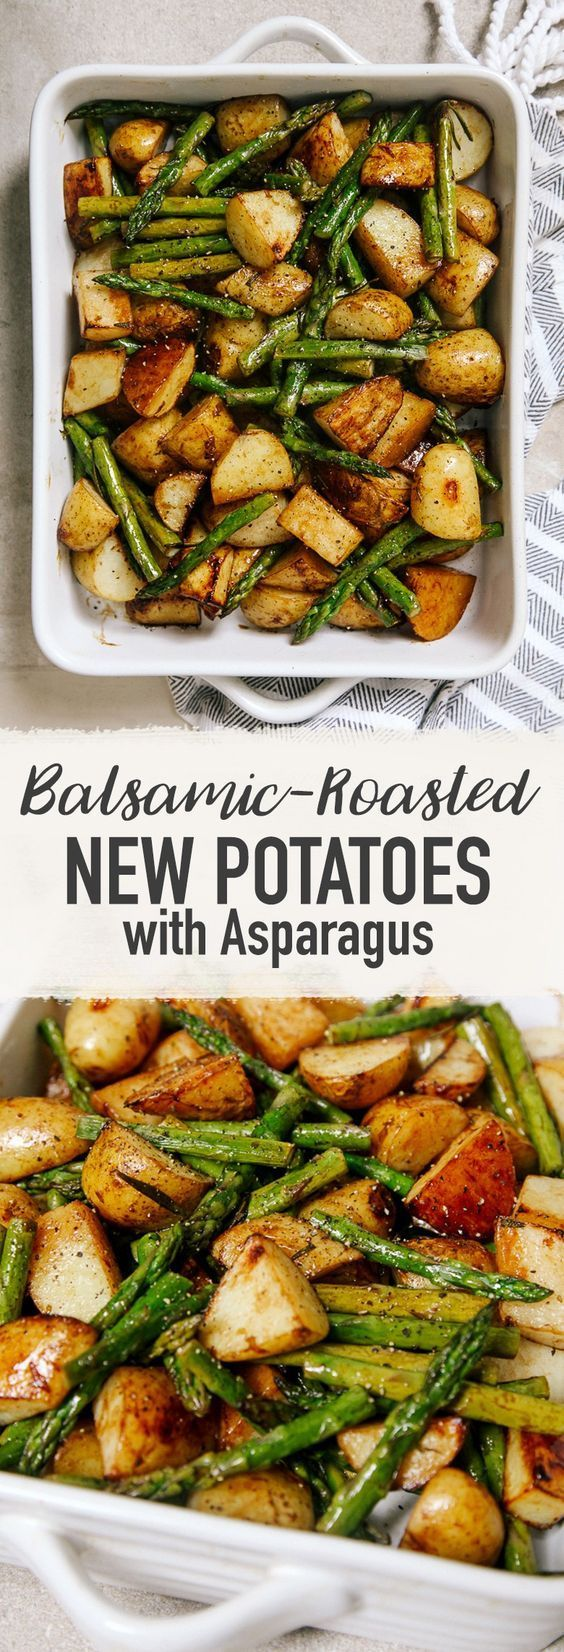 Treat yourself to some snacks! http://amzn.to/2oEqnkm Balsamic Roasted New Potatoes with Asparagus